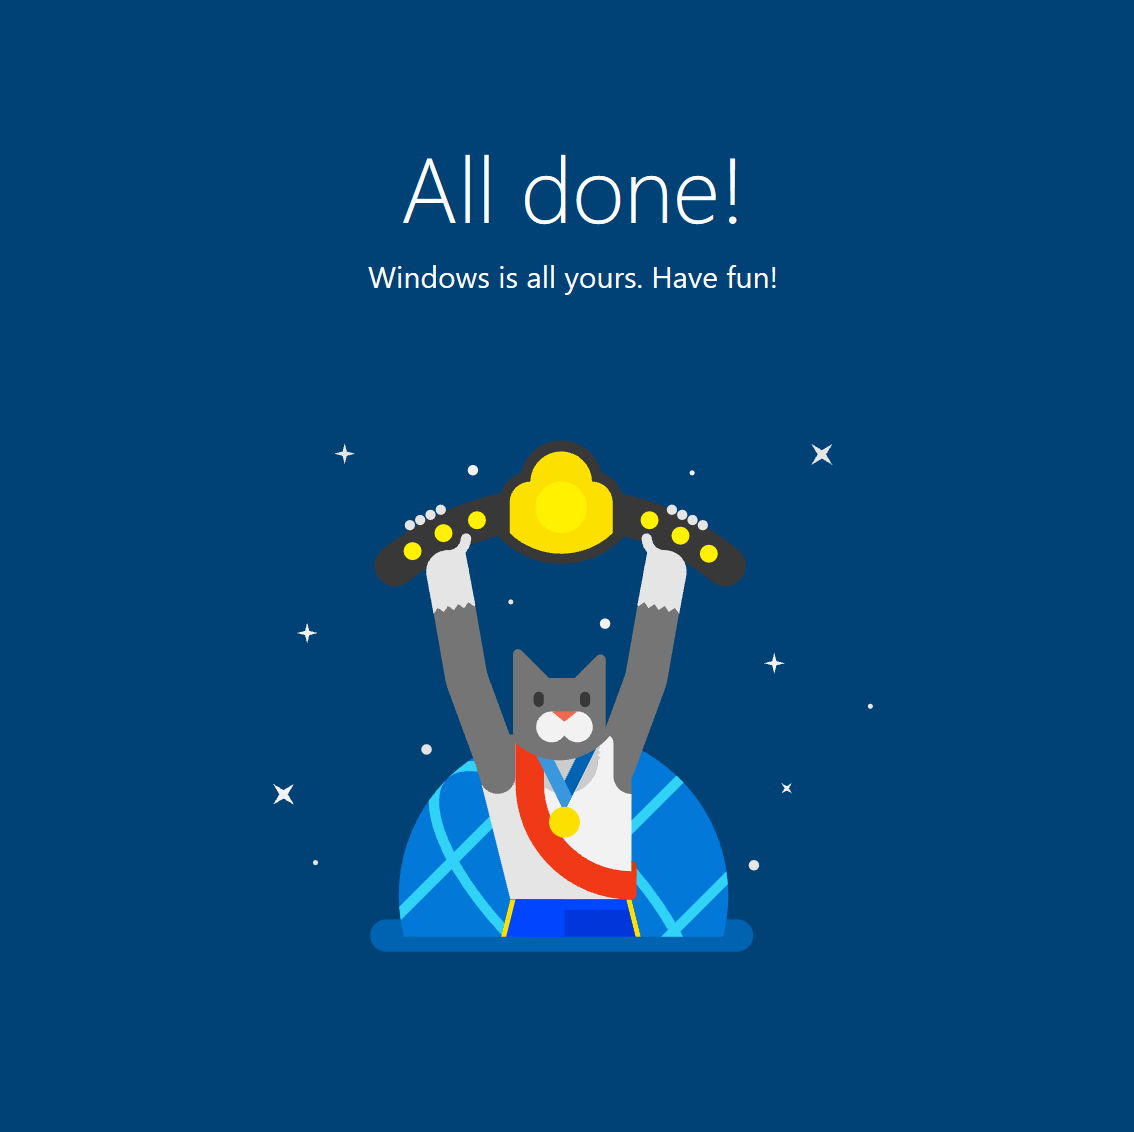 Windows 10 - All Done Graphic